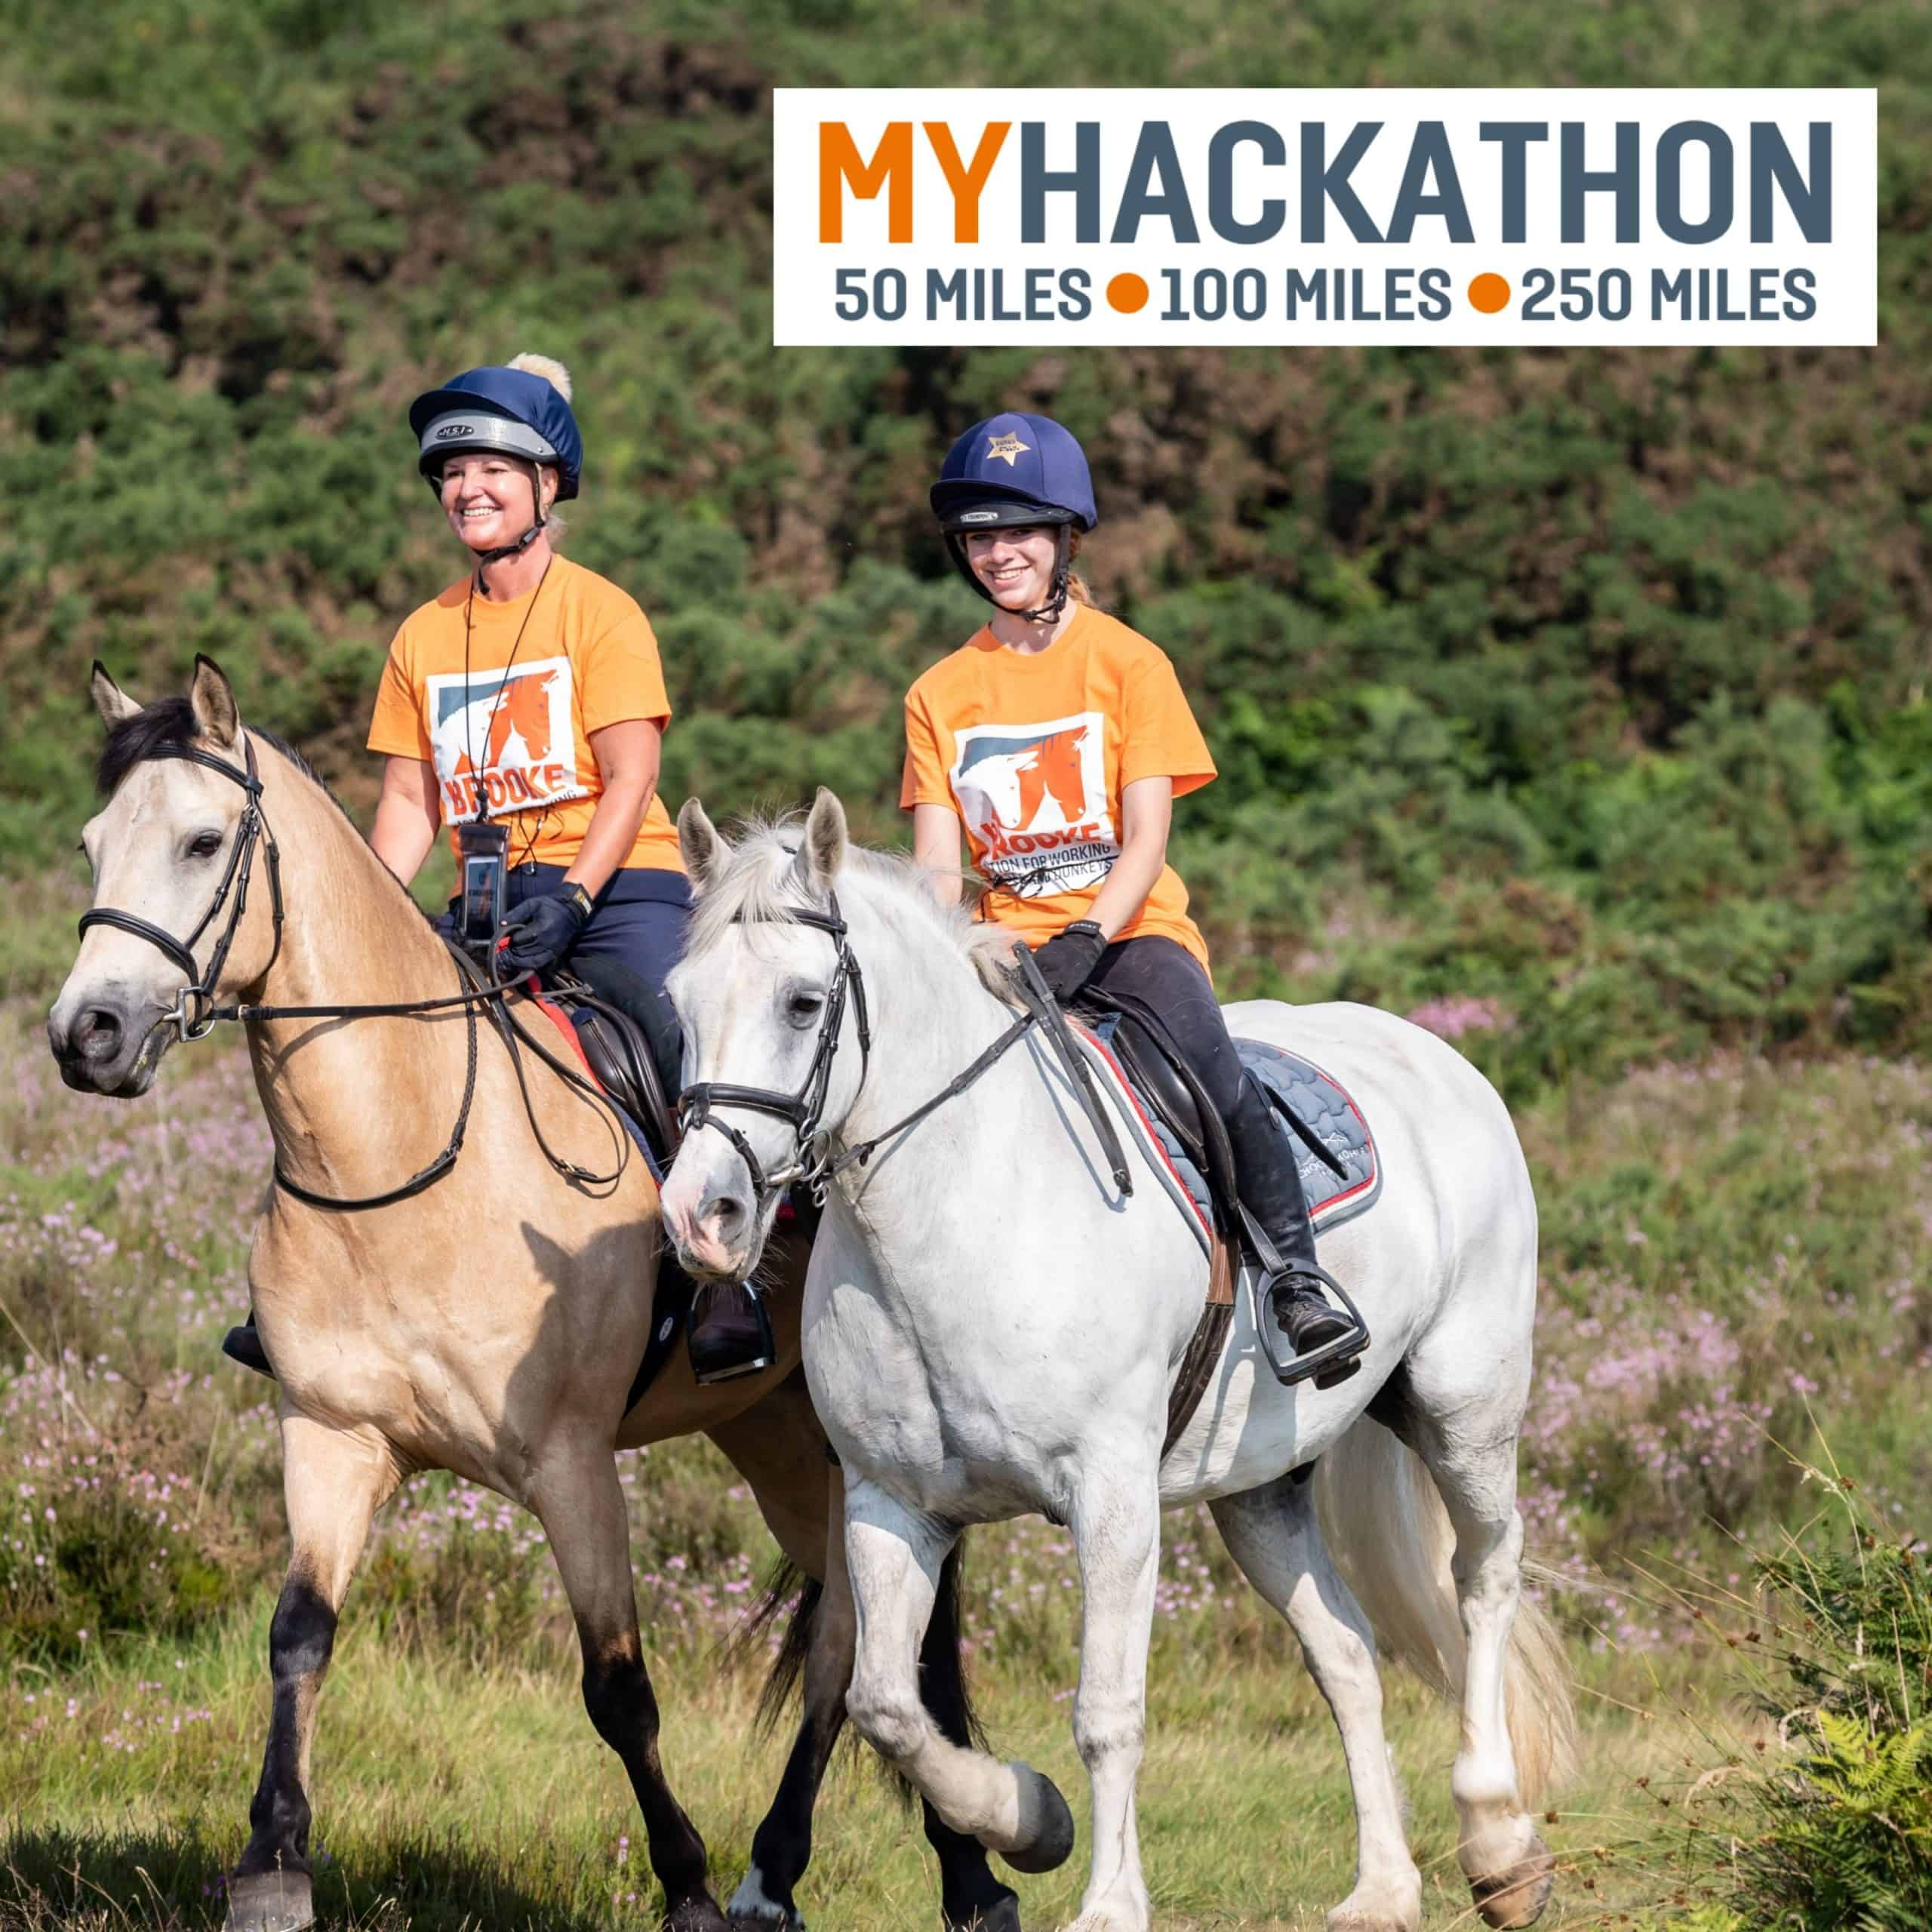 Charity hackathon returns as excellent summer season problem for riders  Charity hackathon returns as excellent summer season problem for riders MyHack 2021 3 scaled